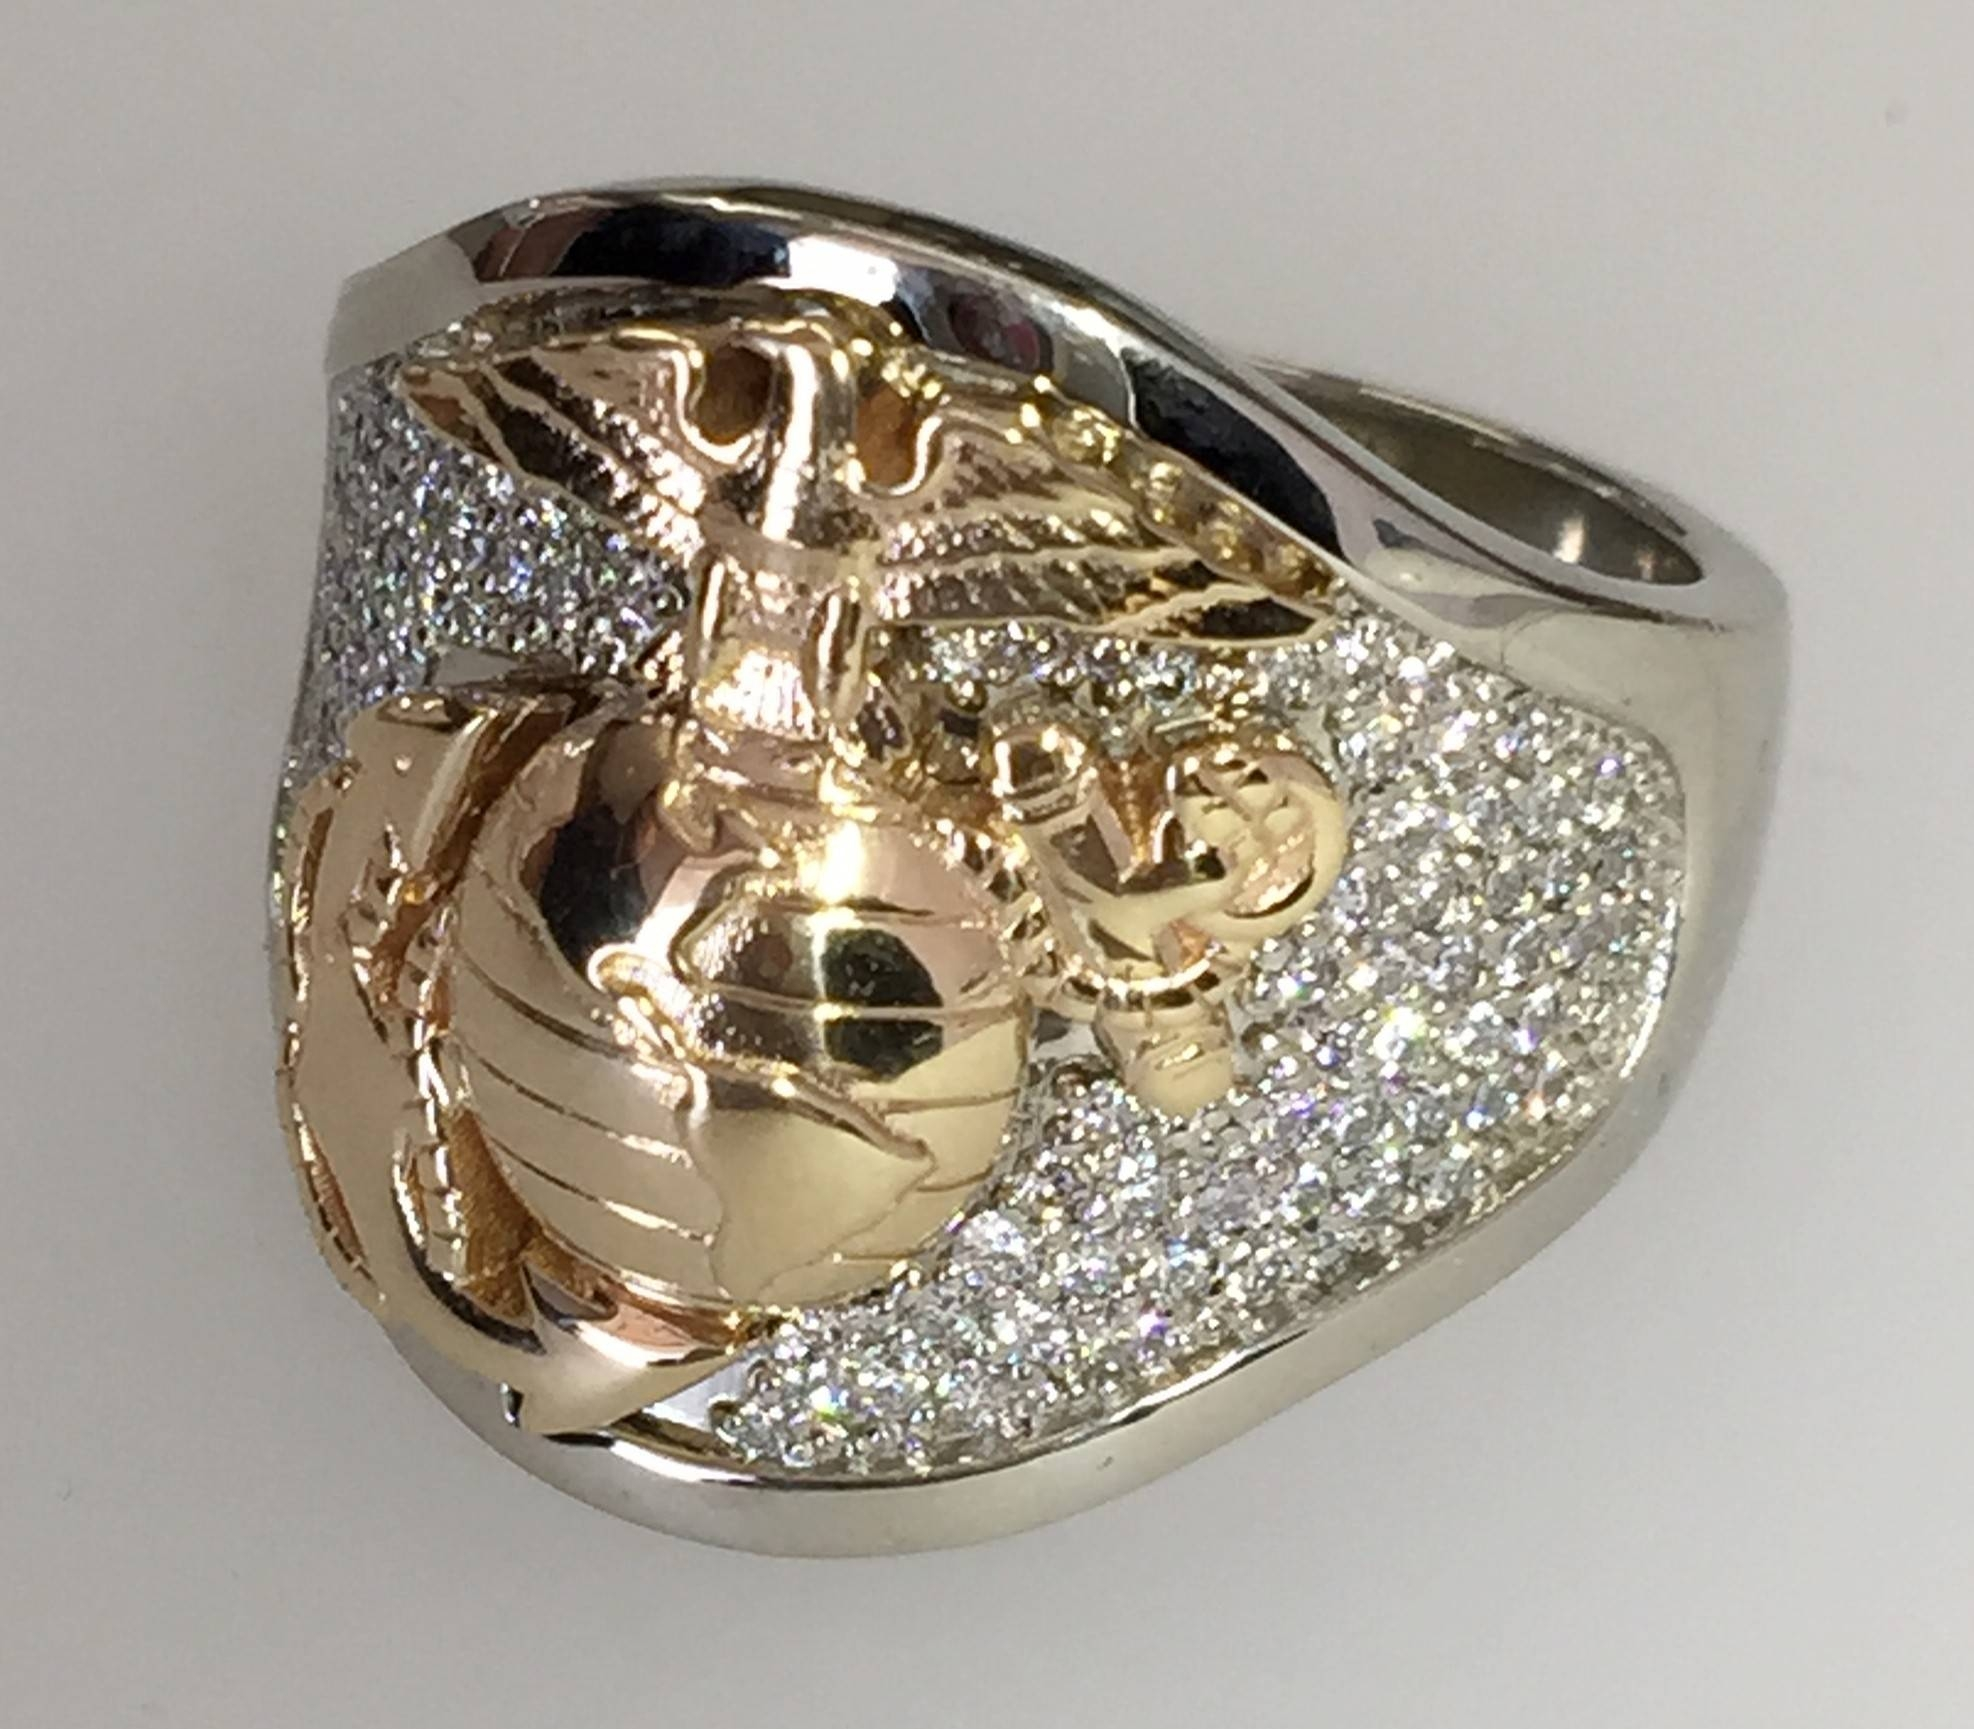 Custom Military Rings Designedusmc Veteran Owned Business And Within Marine Corps Wedding Bands (View 6 of 15)